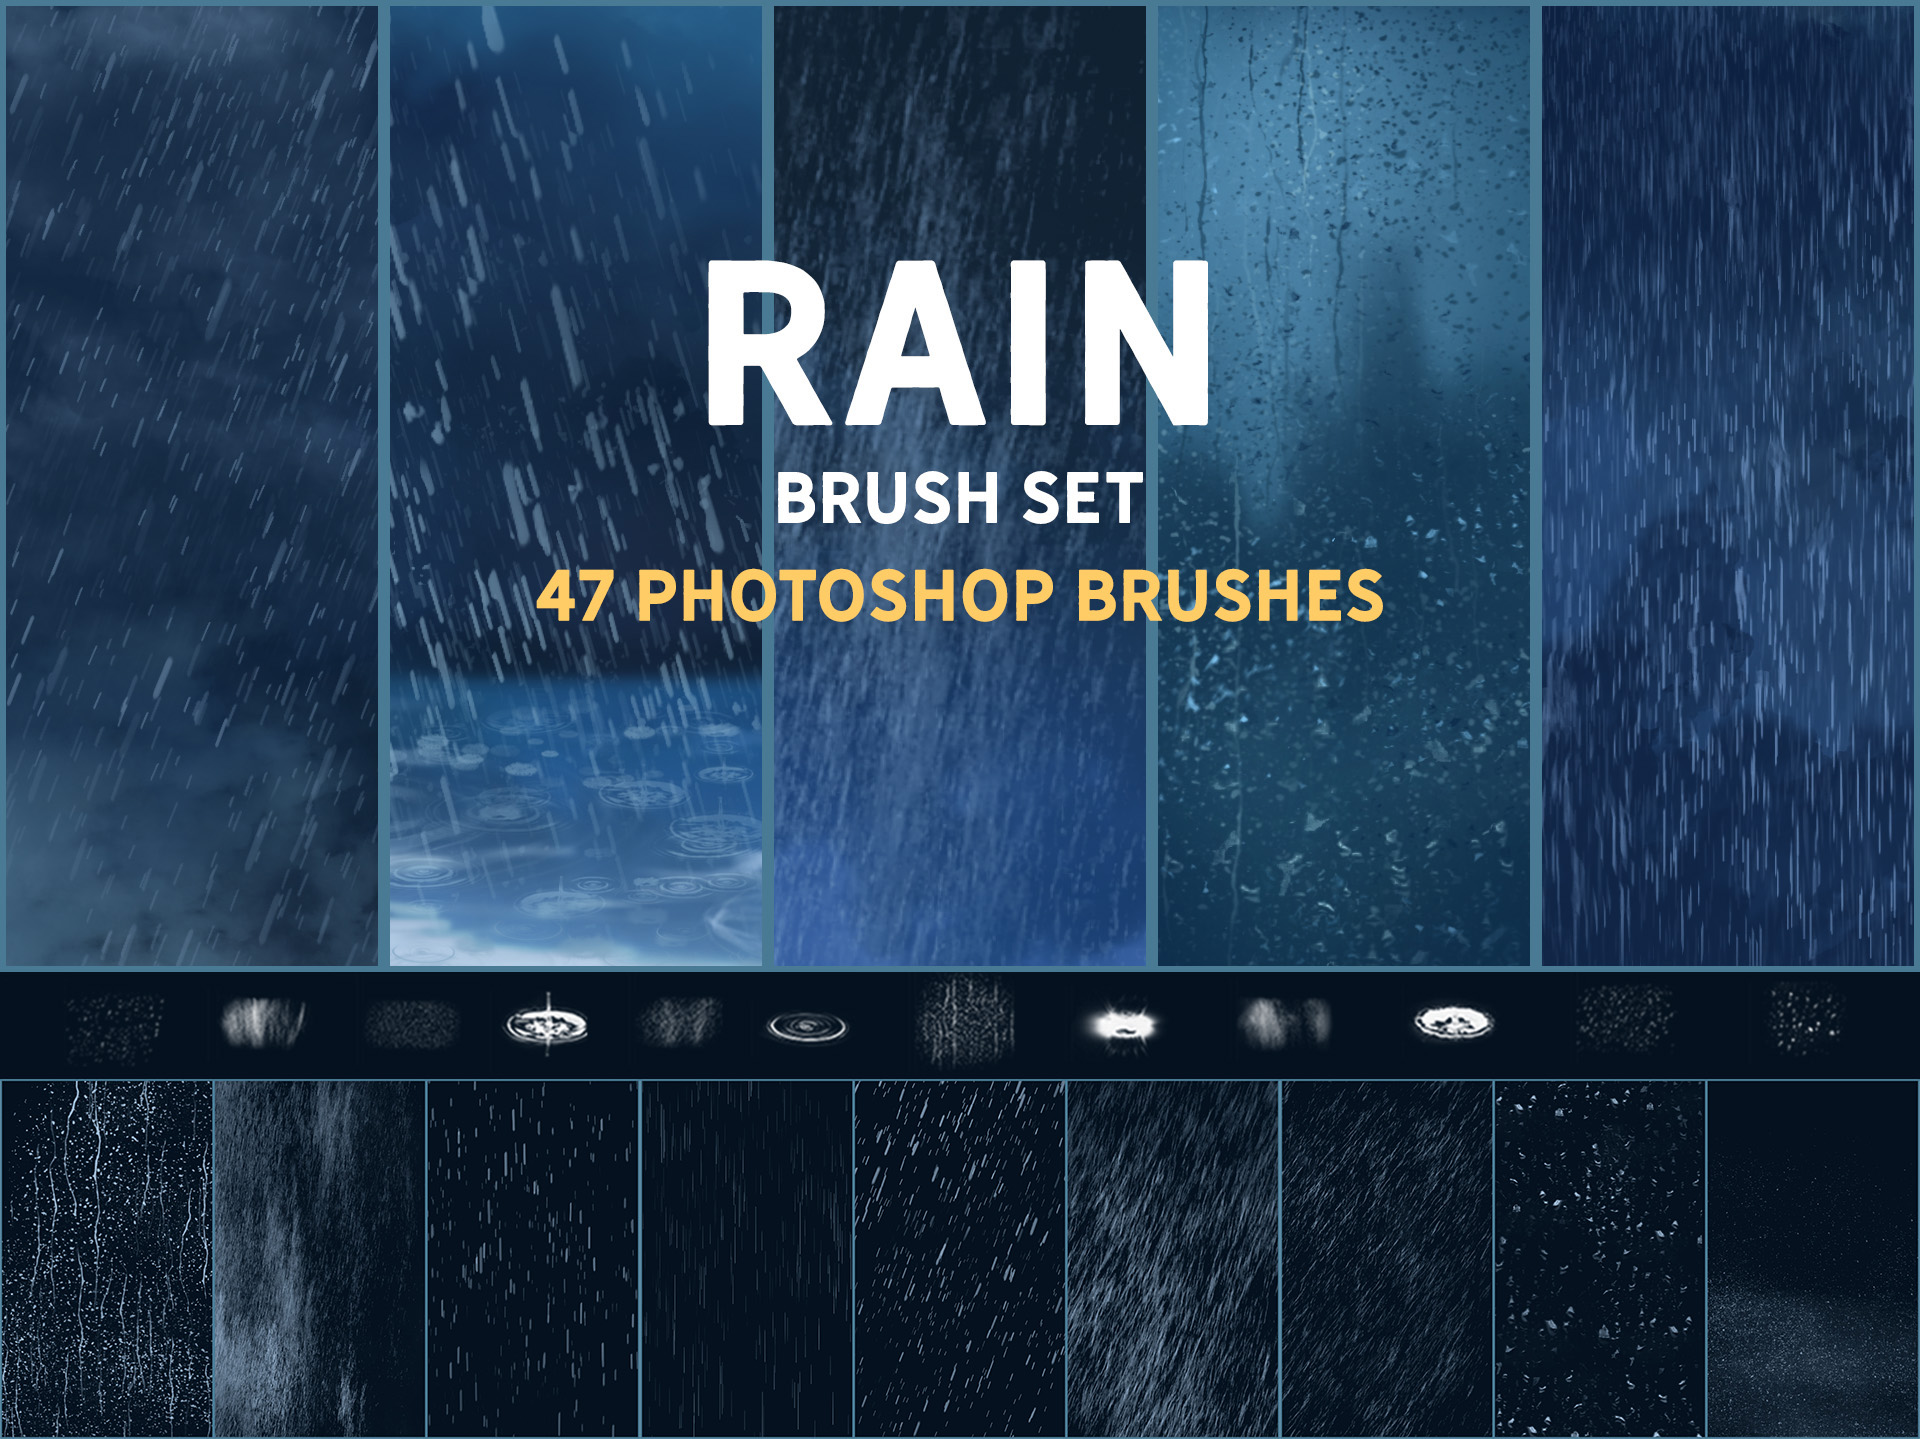 Rain brush set